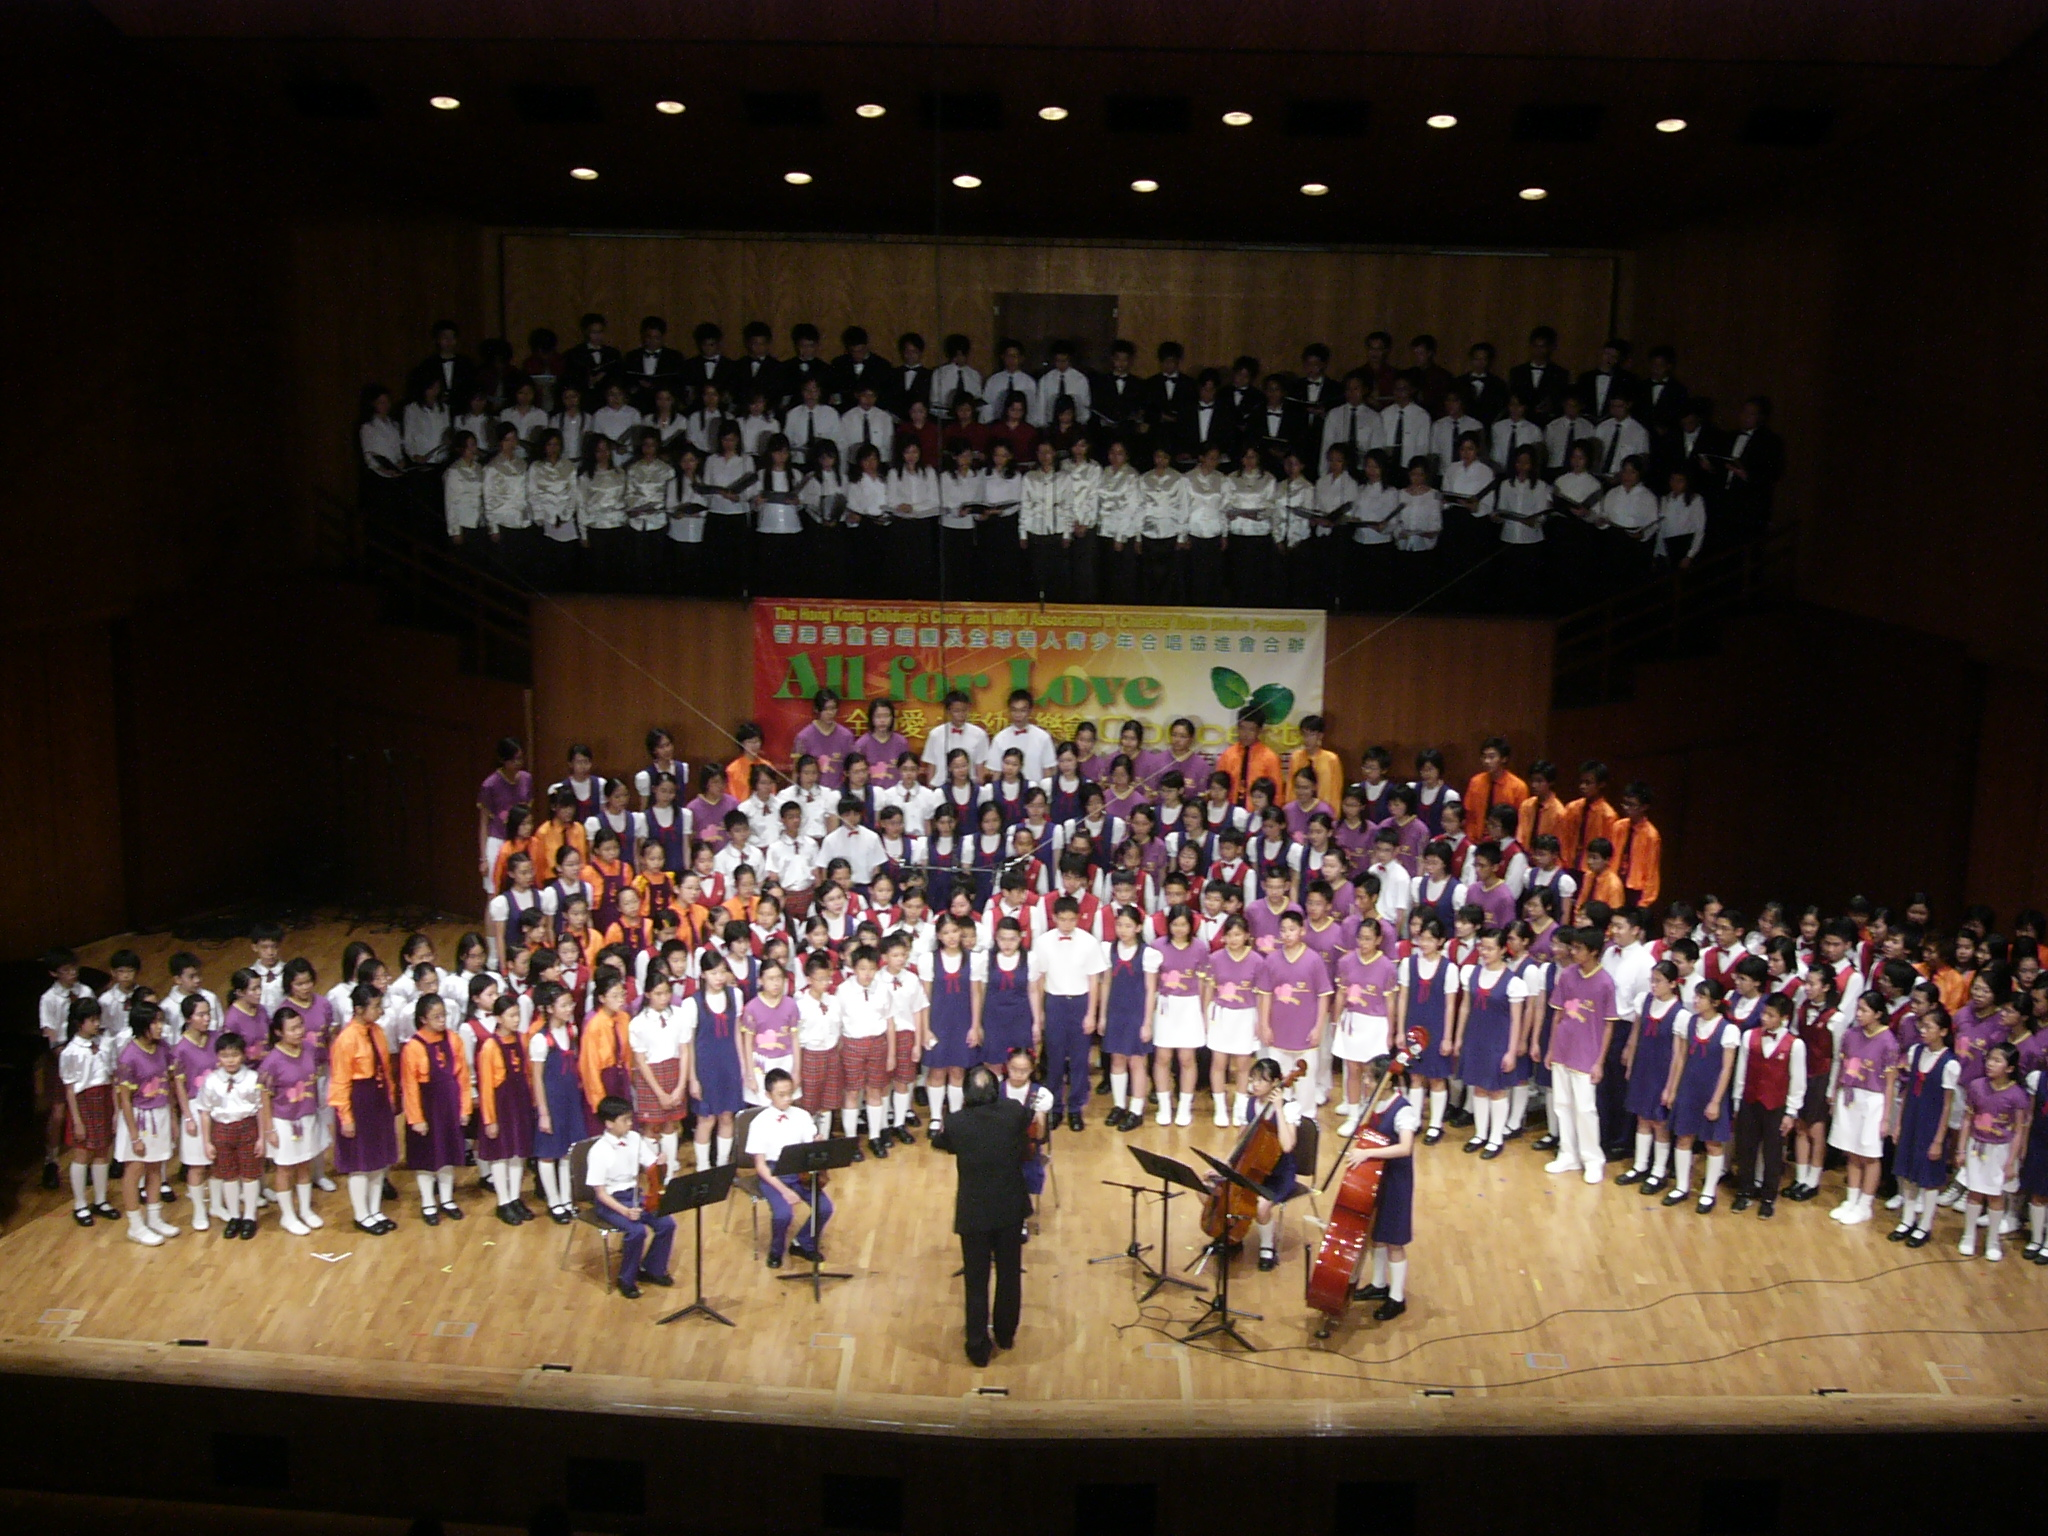 https://www.hkcchoir.org/sites/default/files/charity_2003_all_for_love1.jpg